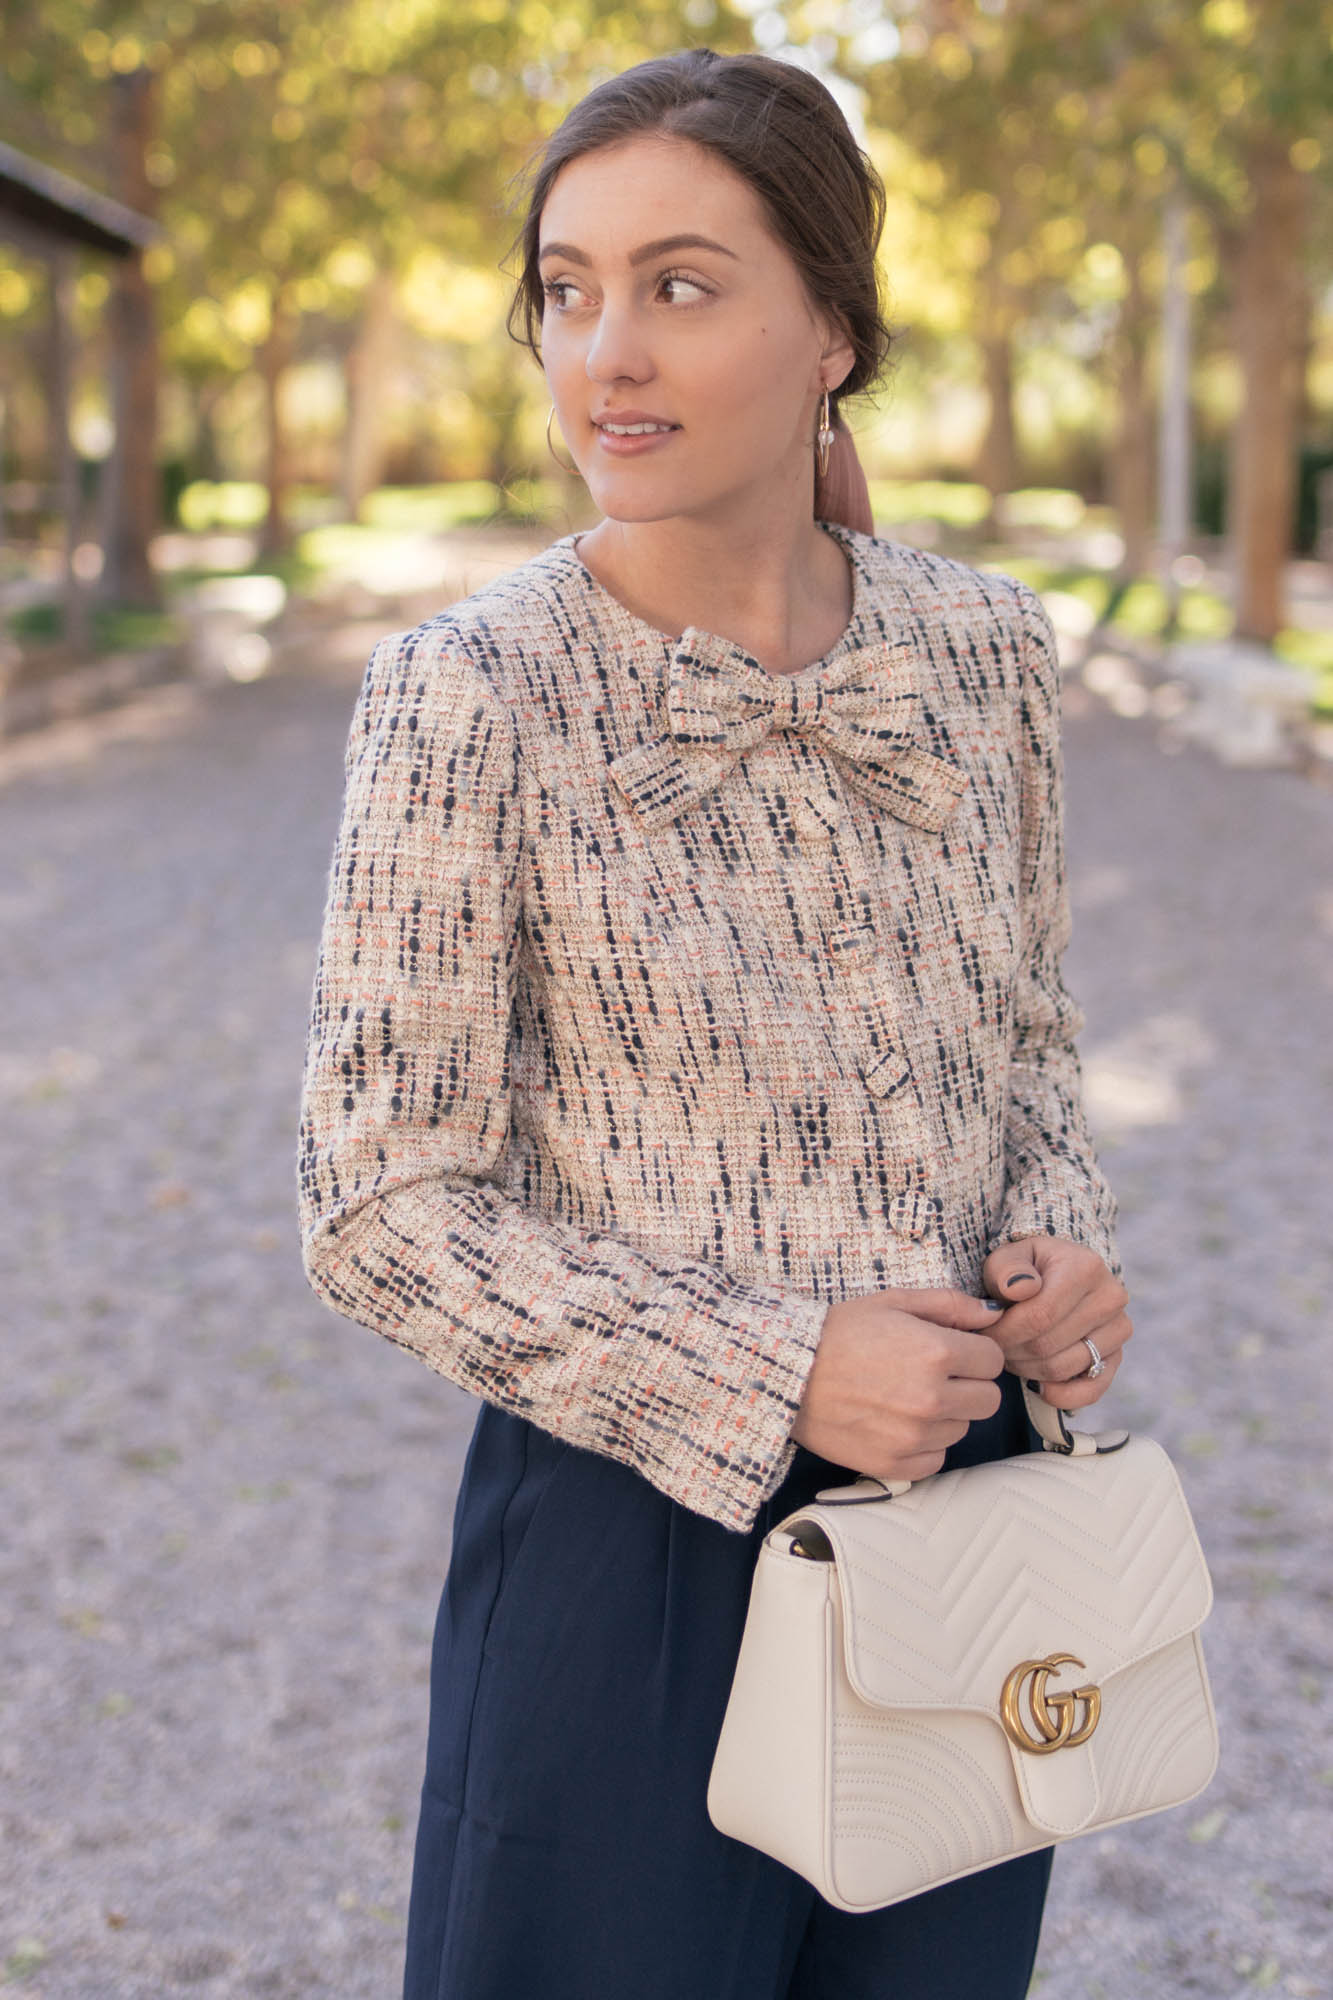 Ultra Feminine in Tweed - www.HaleighHall.com